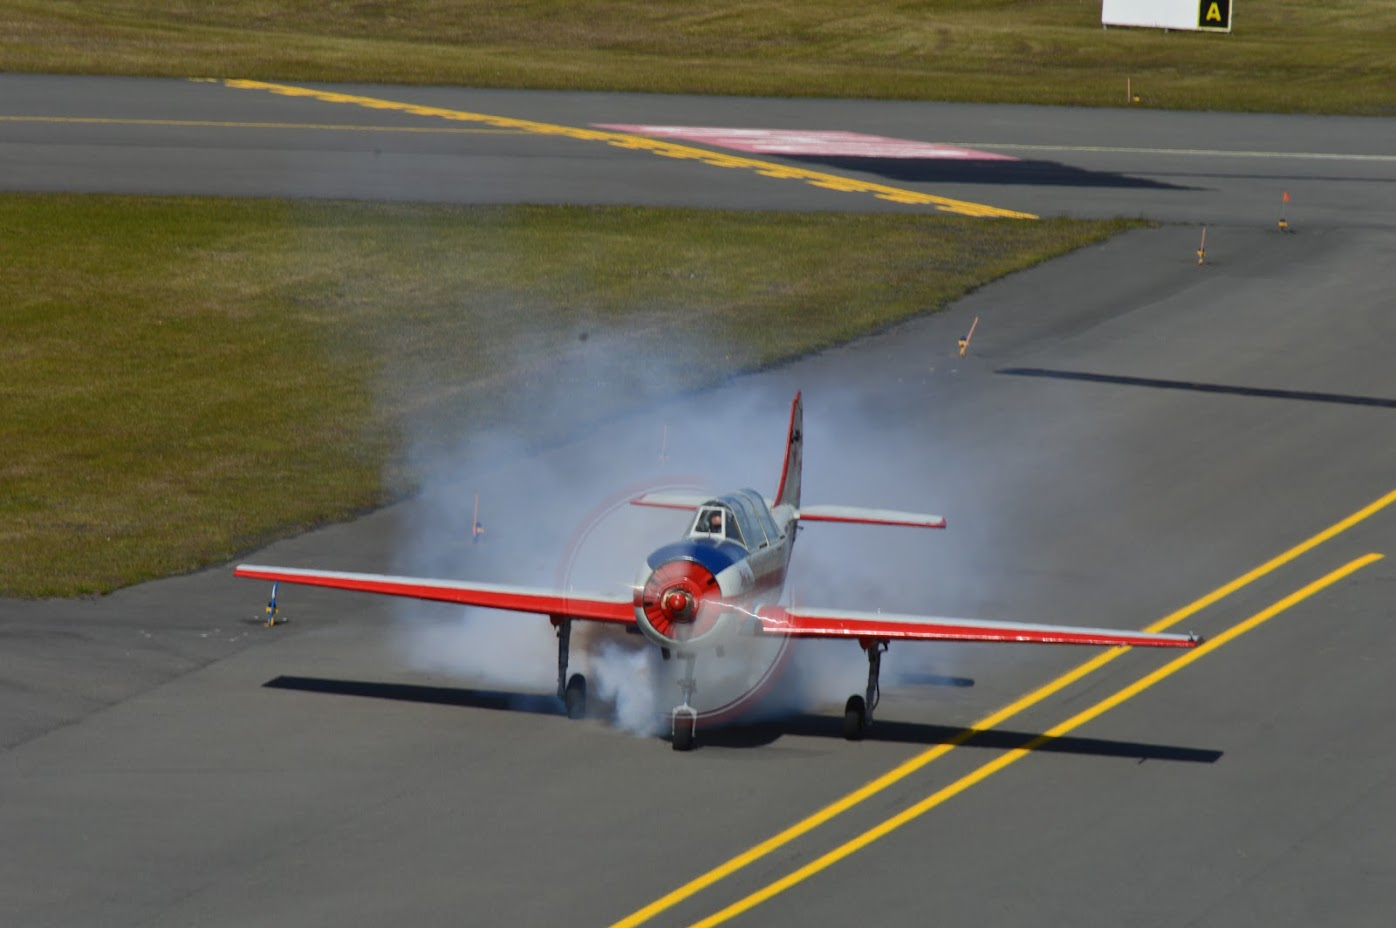 Snorri Bjarnvin Jonson is getting ready for aerobatic performance with smokes on Yak-52 TF-BCX during Reykjavik Airshow 2019 // Source: Halldór Sigurðsson